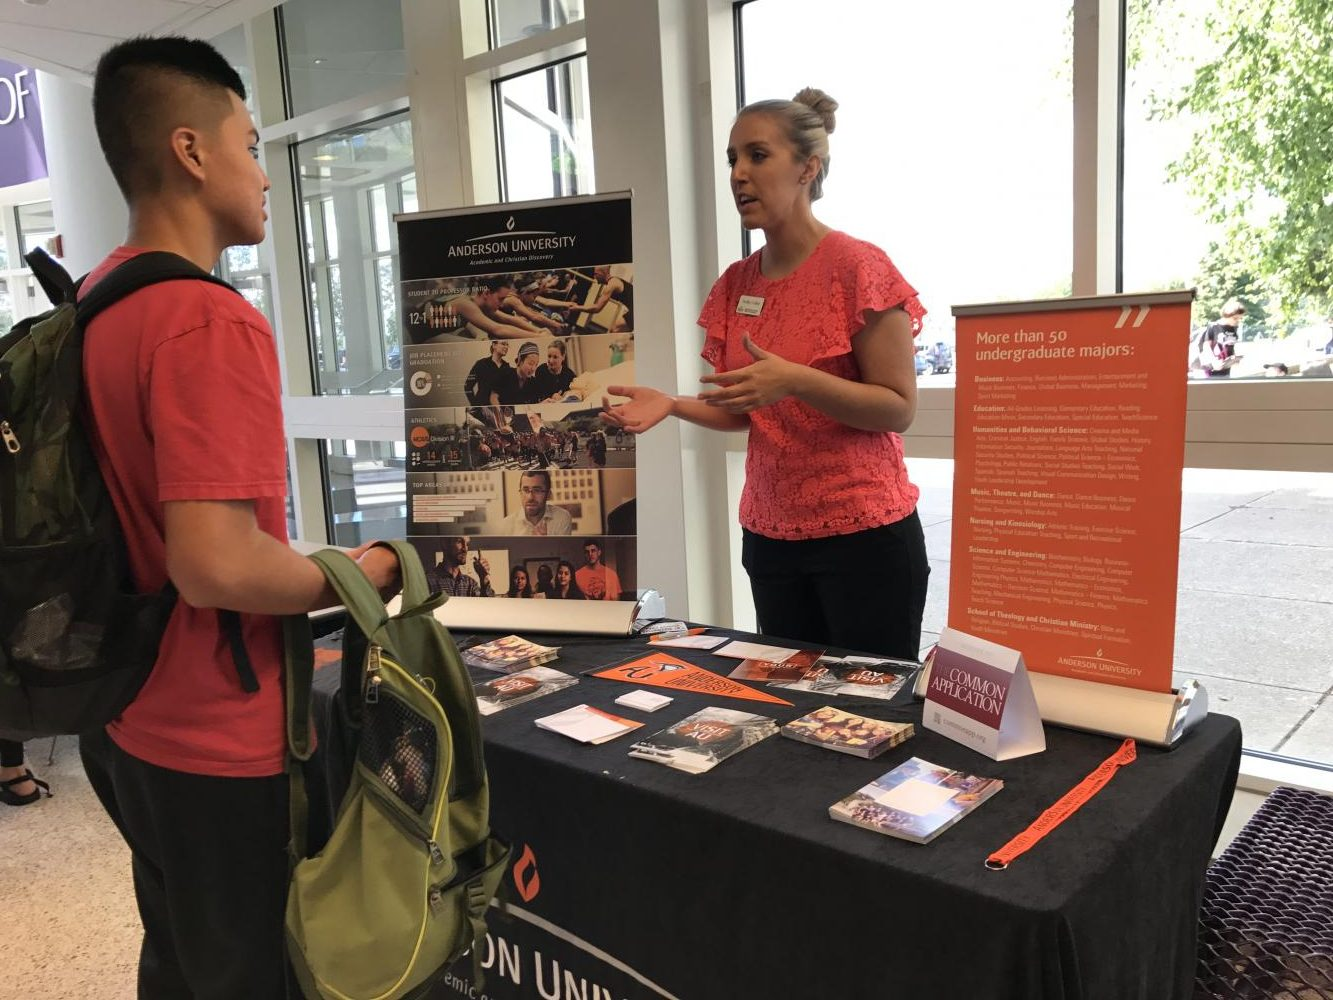 Anderson University rep shares information with interested student